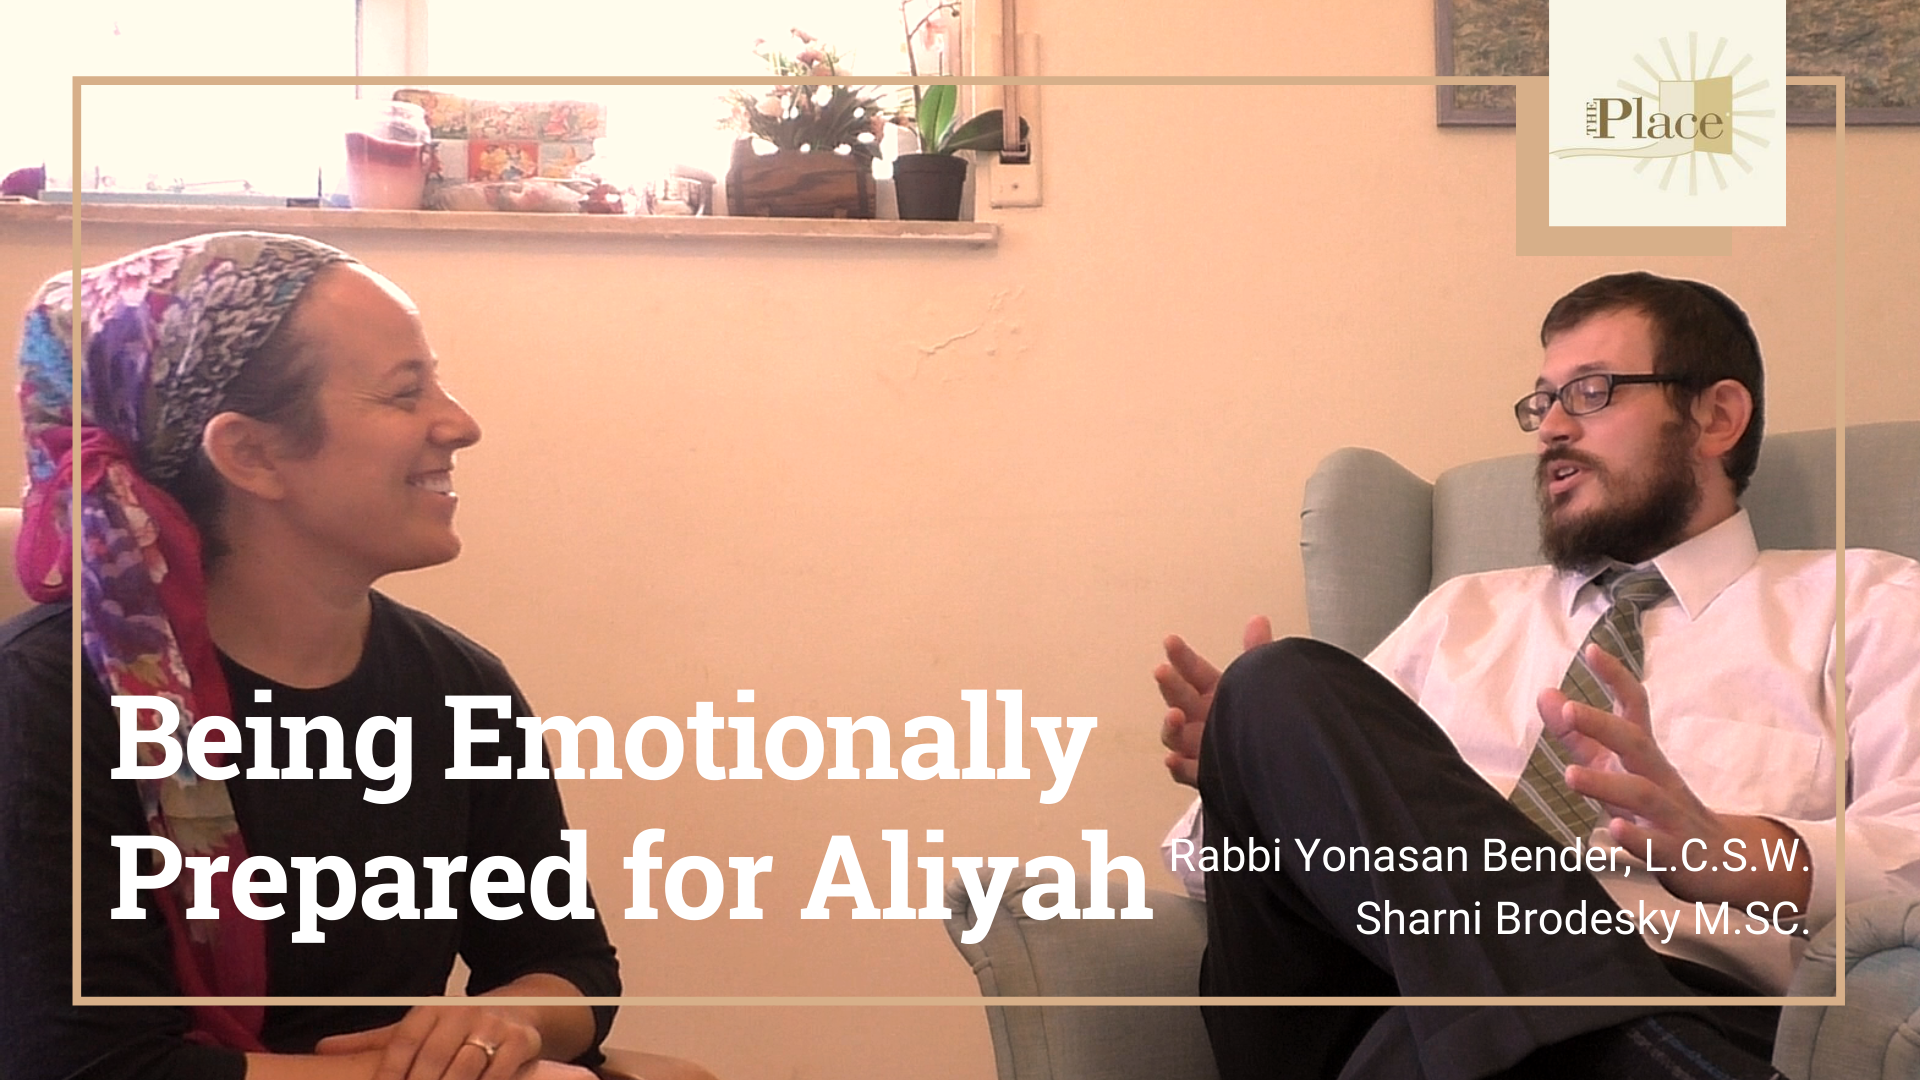 Interview: Being Emotionally Prepared For Aliyah